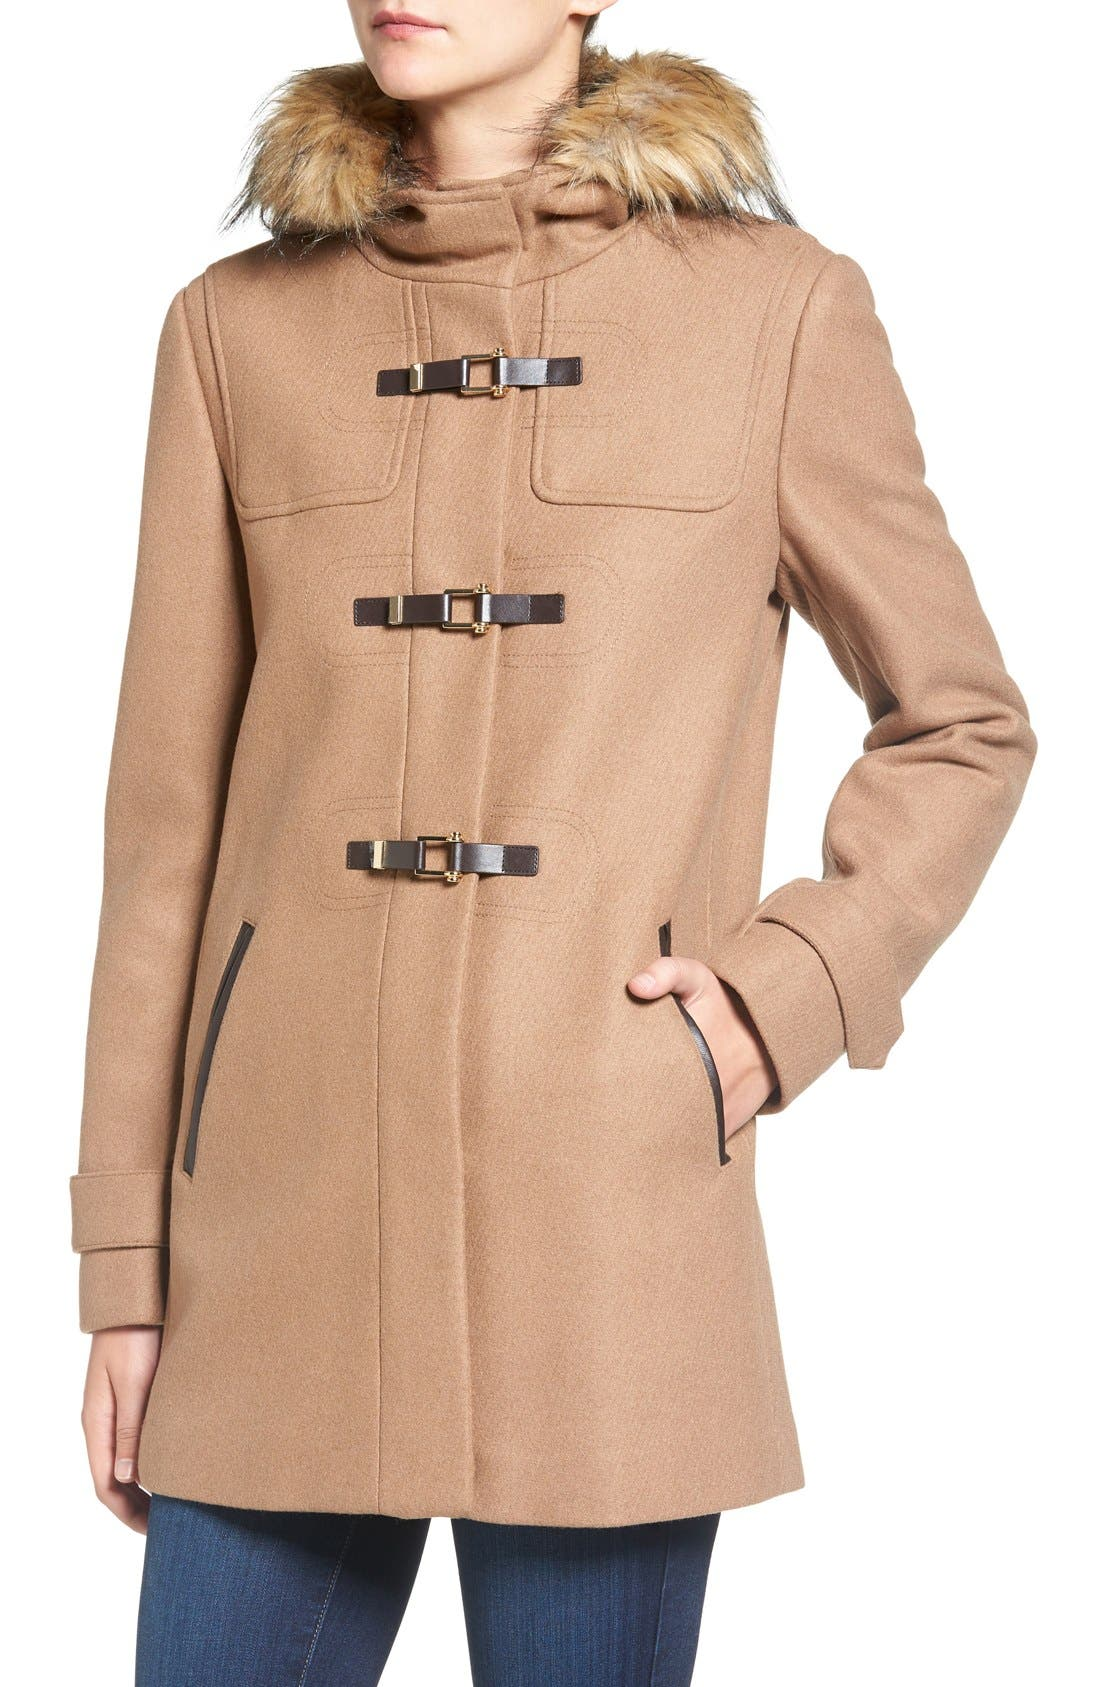 Cole Haan Hooded Duffle Coat with Faux Fur Trim,                             Alternate thumbnail 4, color,                             Camel